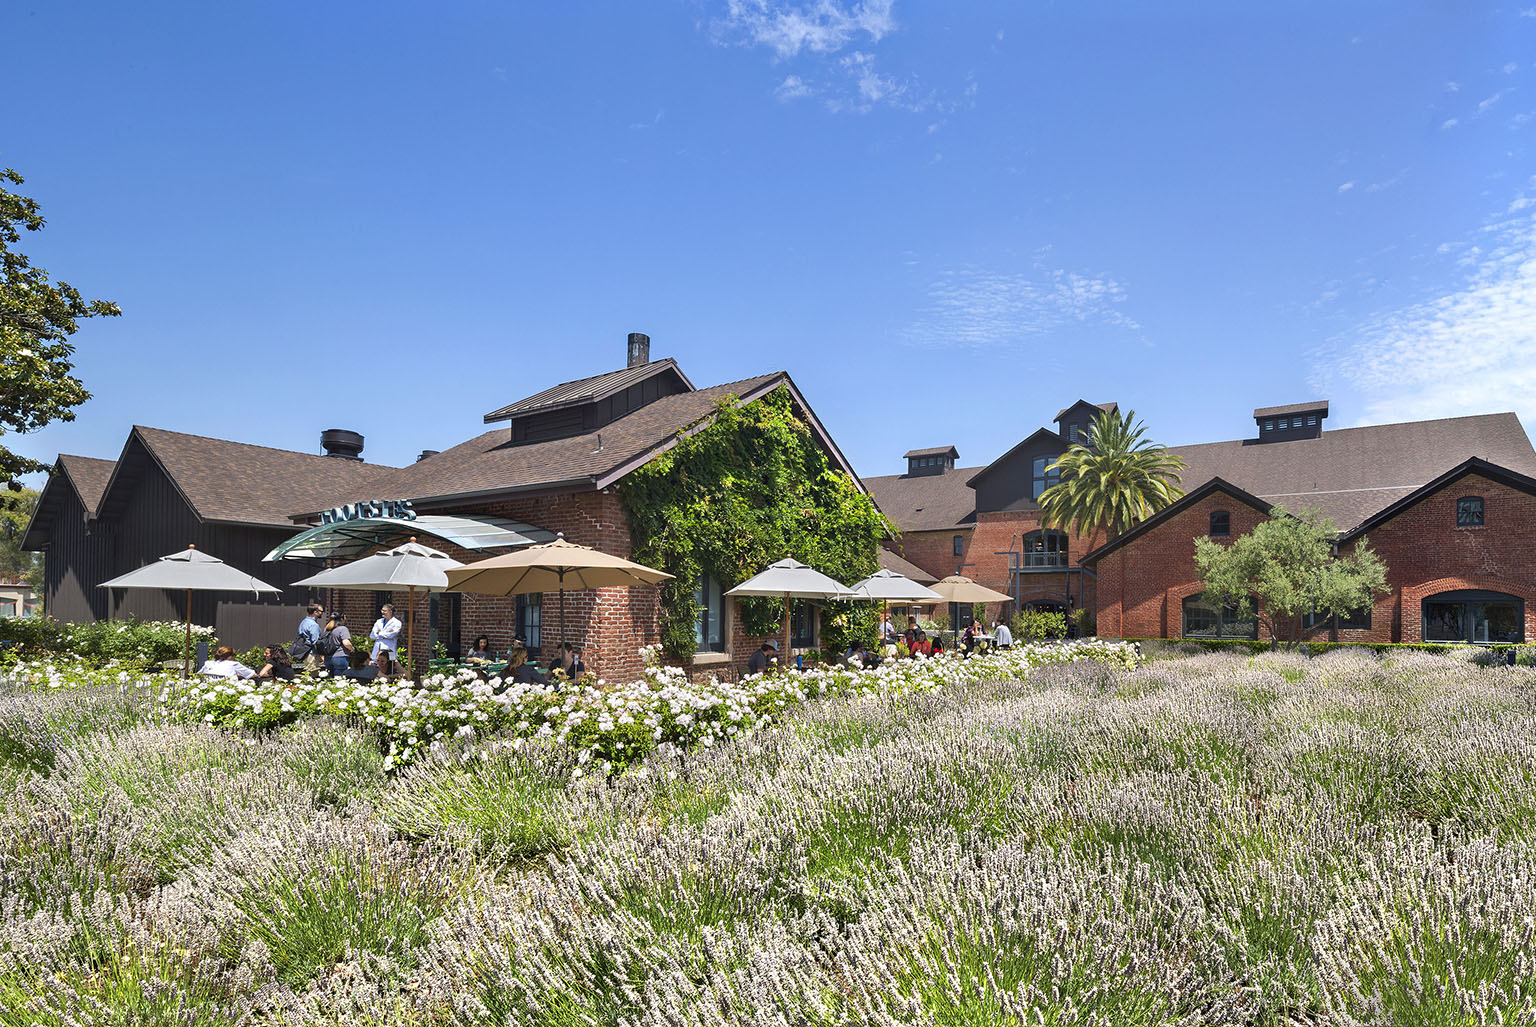 Stanford Old Winery